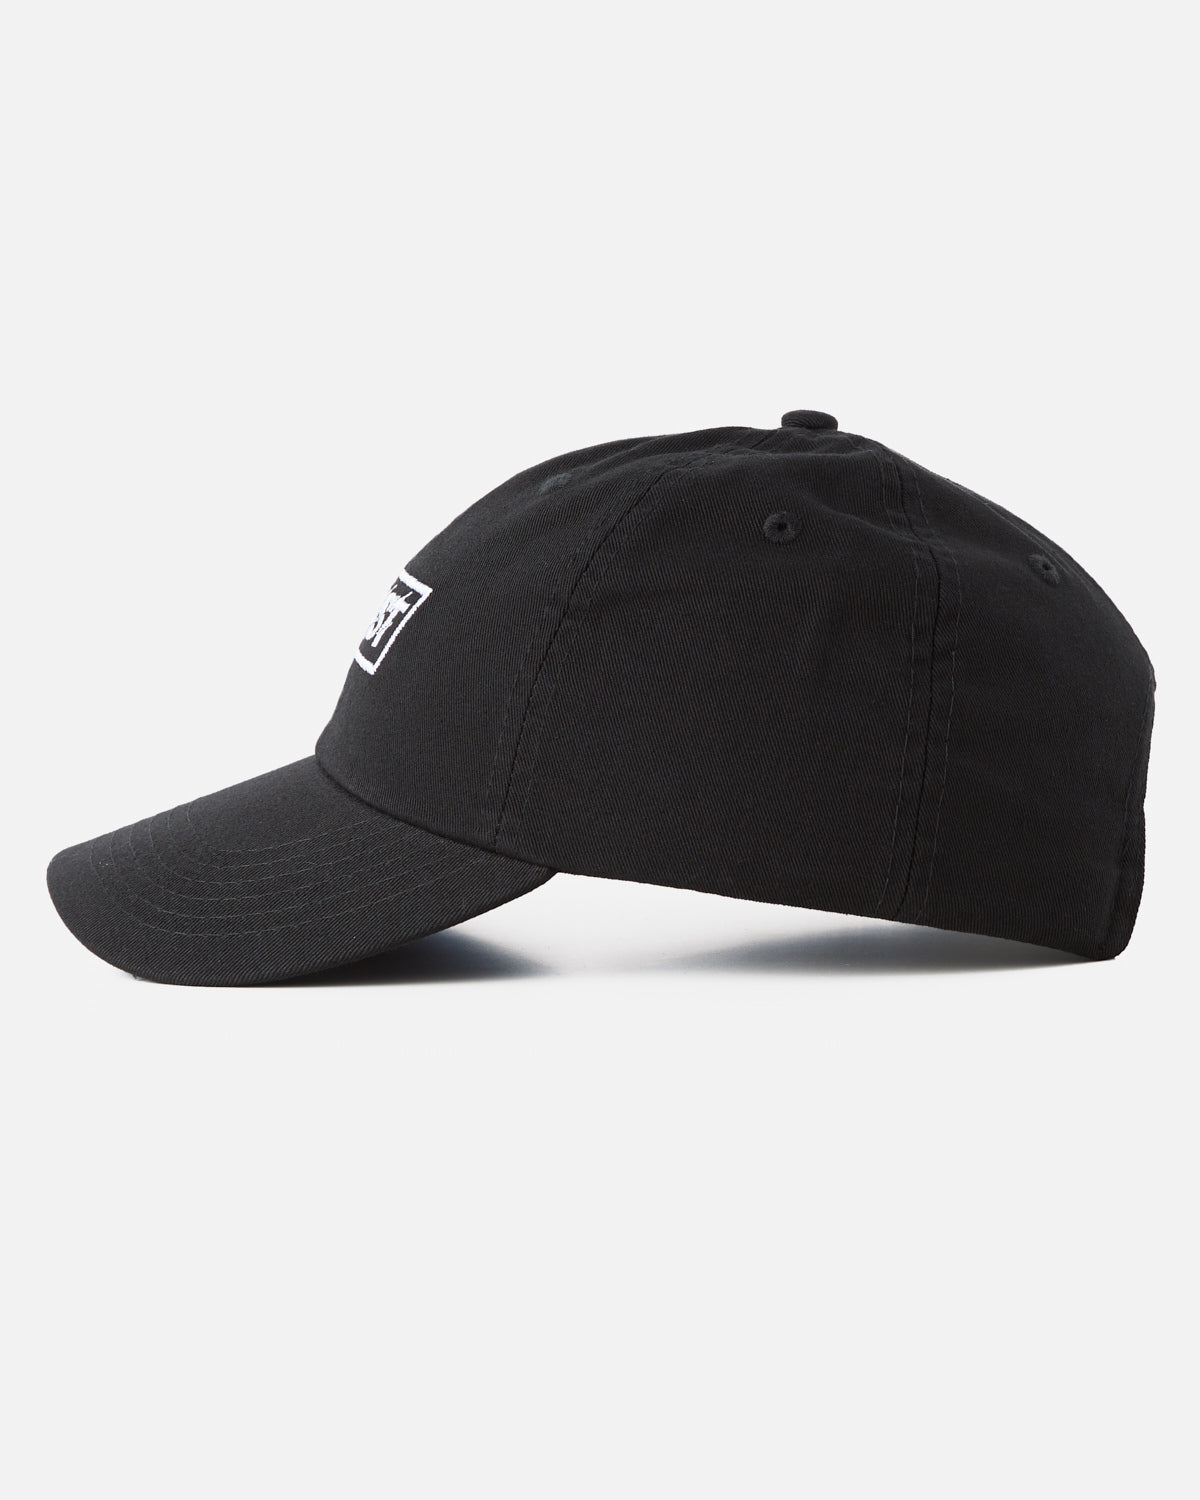 'Beast' Dad Hat - Black/White